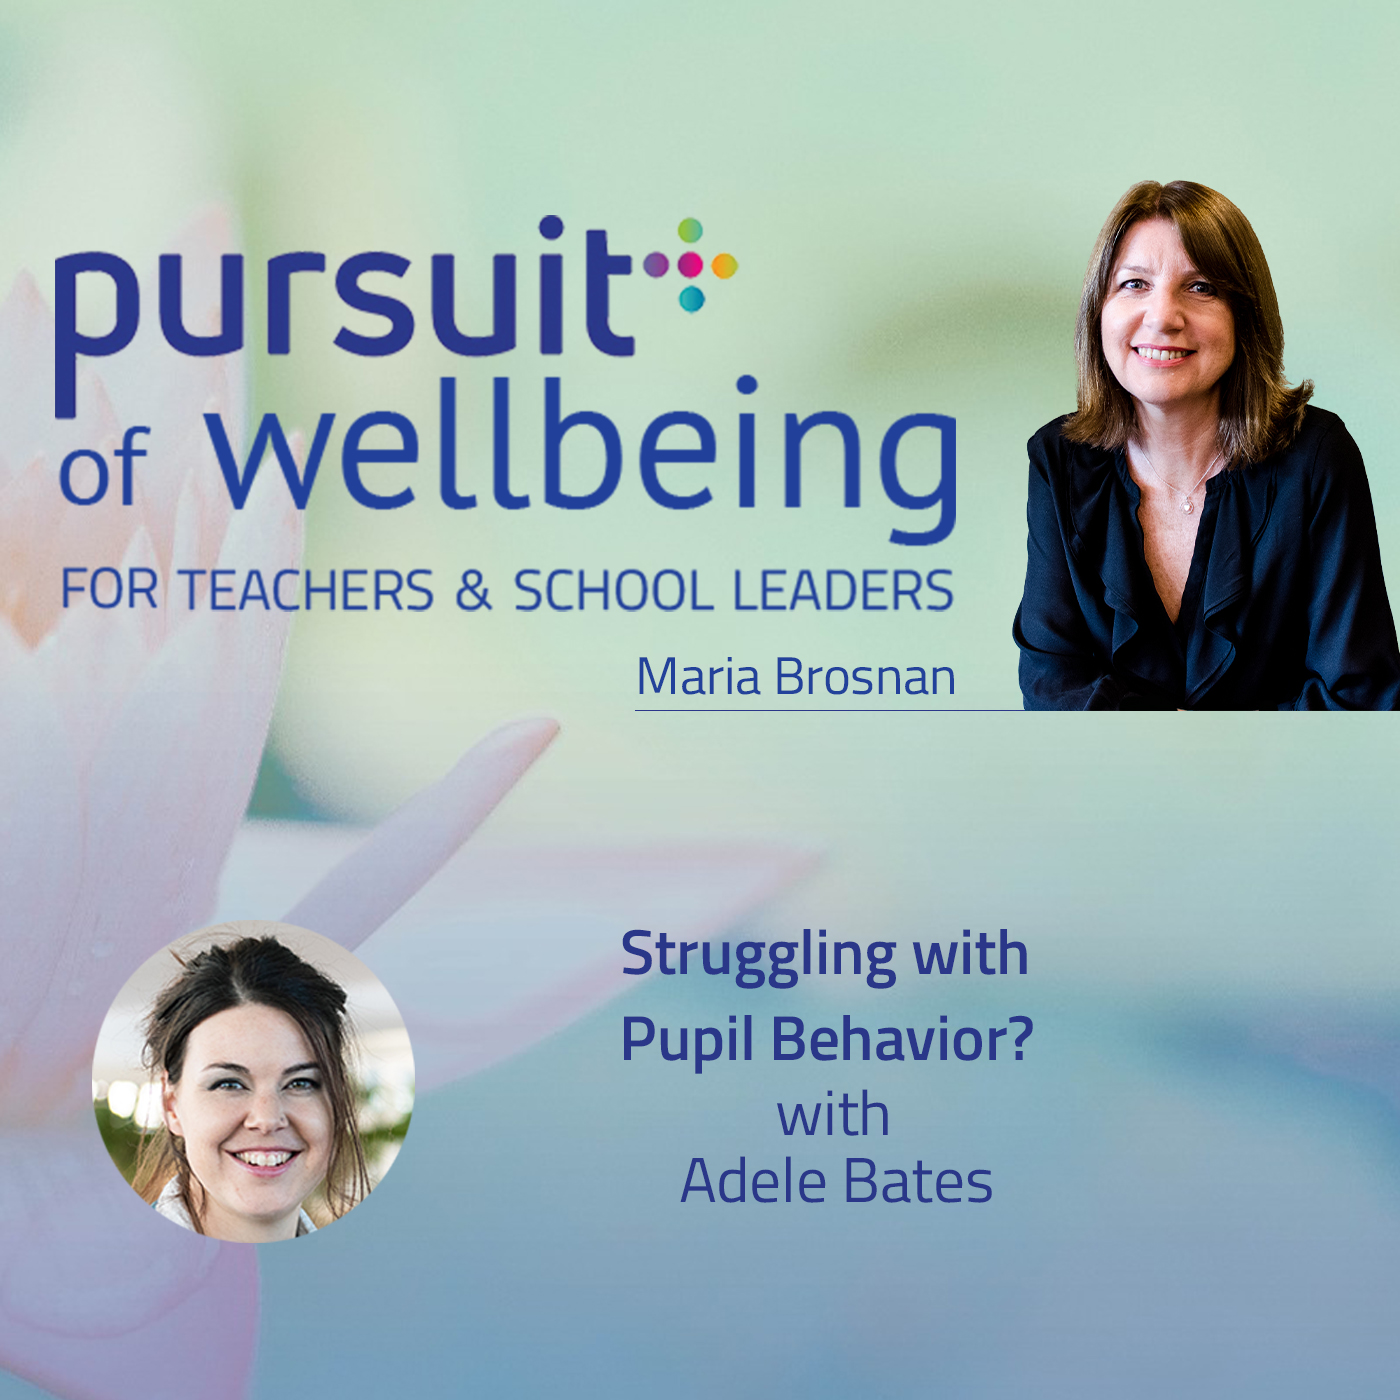 Struggling with Pupil Behaviour? with Adele Bates